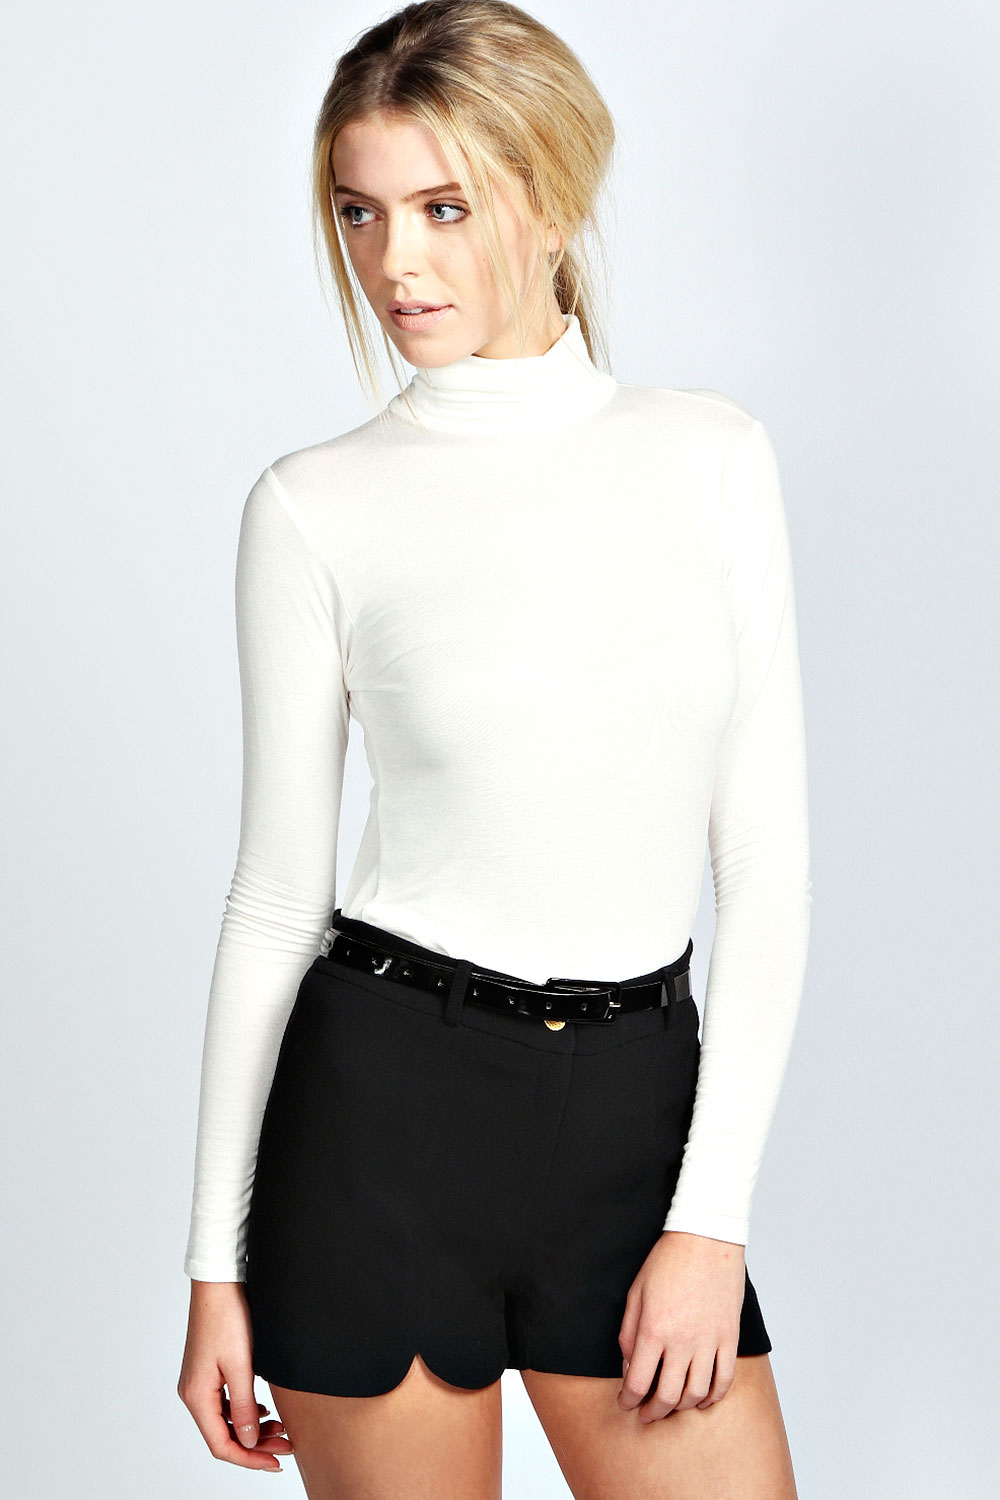 Find great deals on eBay for women's turtleneck tops. Shop with confidence.